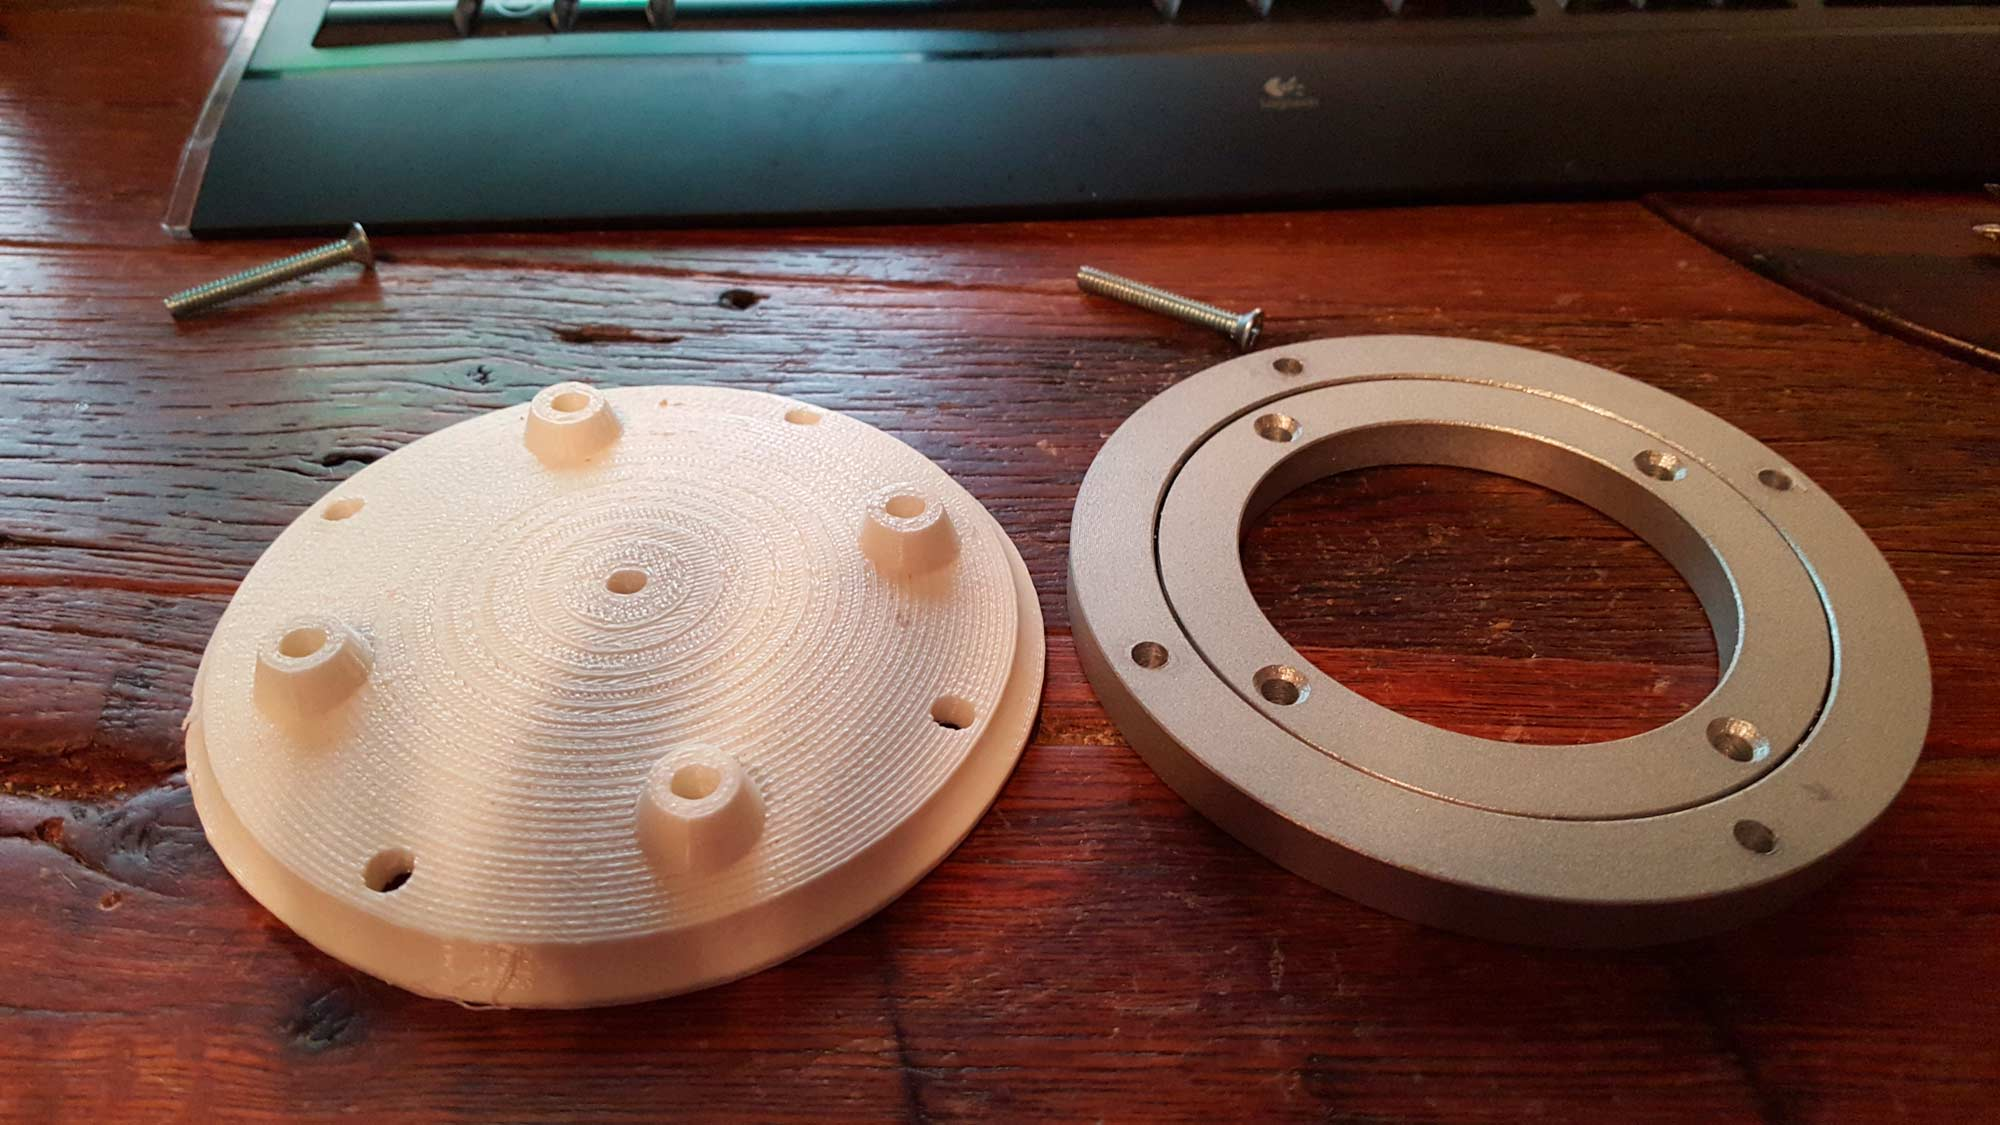 Next up is the other side of the magnetic coupling, the DMM. I'm using a small lazy susan bearing in the head to keep all the mechanics as low down as possible. So I first printed a test piece to make sure everything lined up.